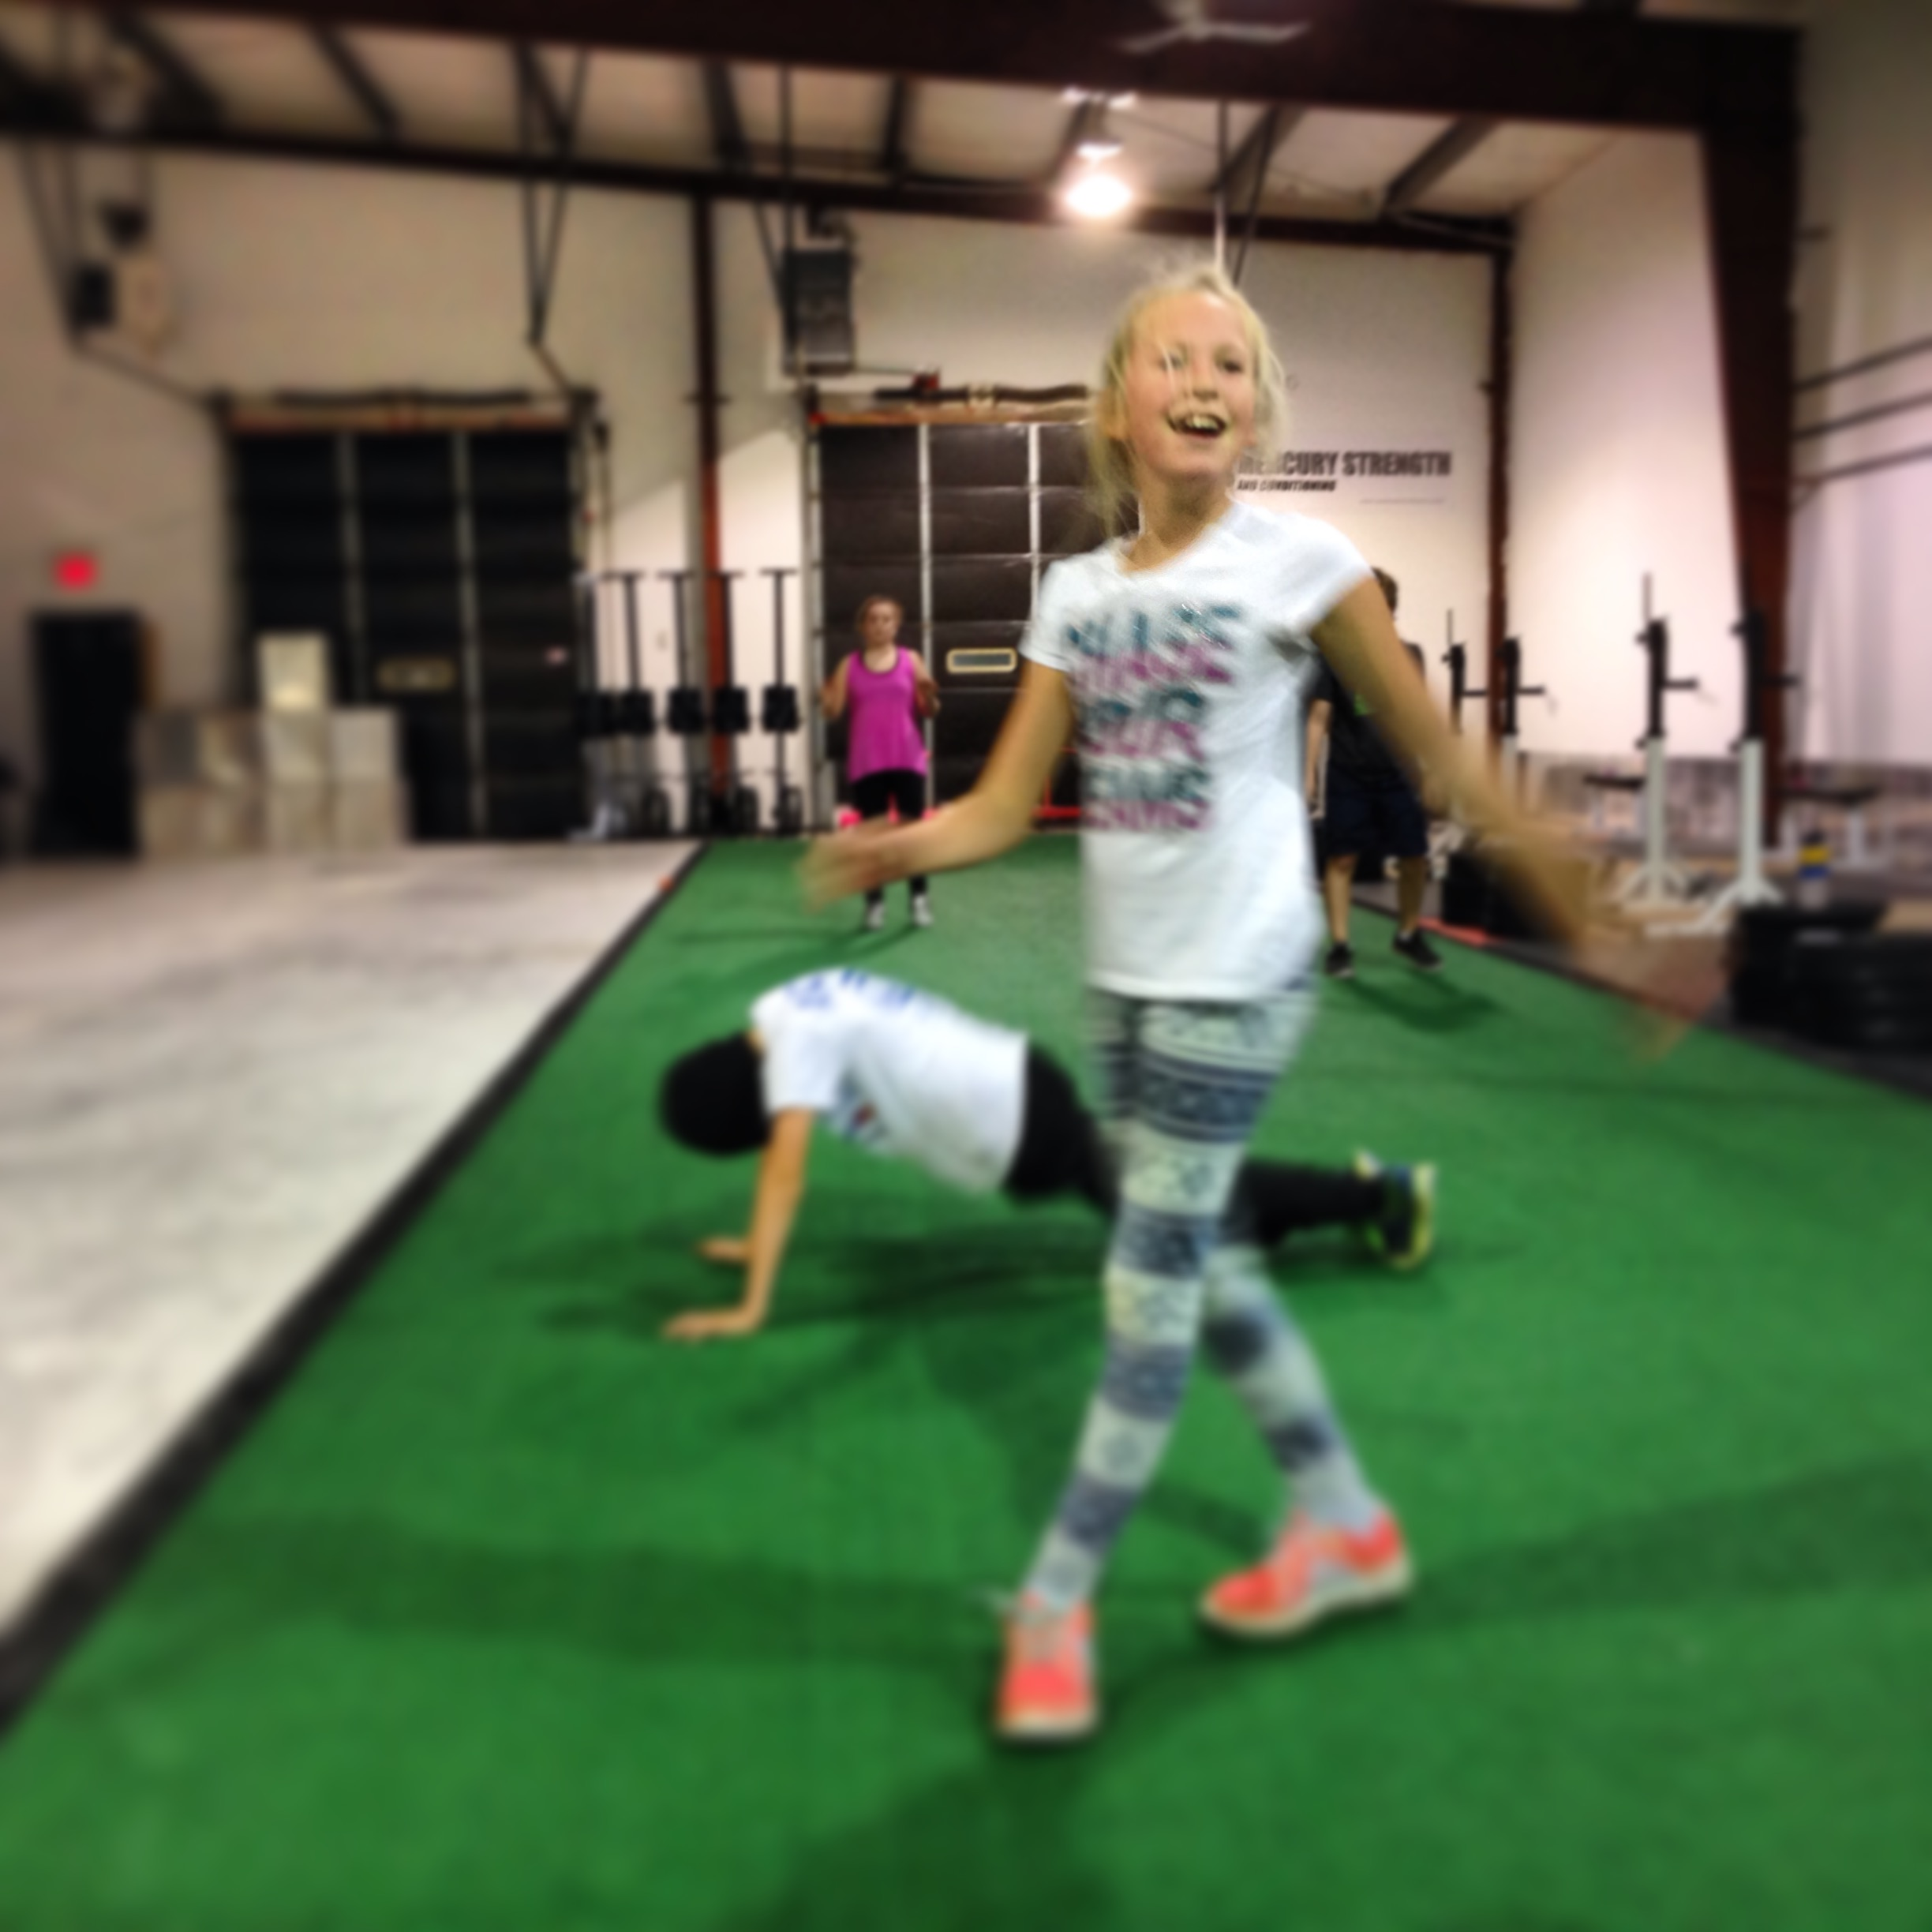 Here is Abby being pretty excited after finishing with 140 BURPEES in 10 minutes!!! Awesome job Abby!